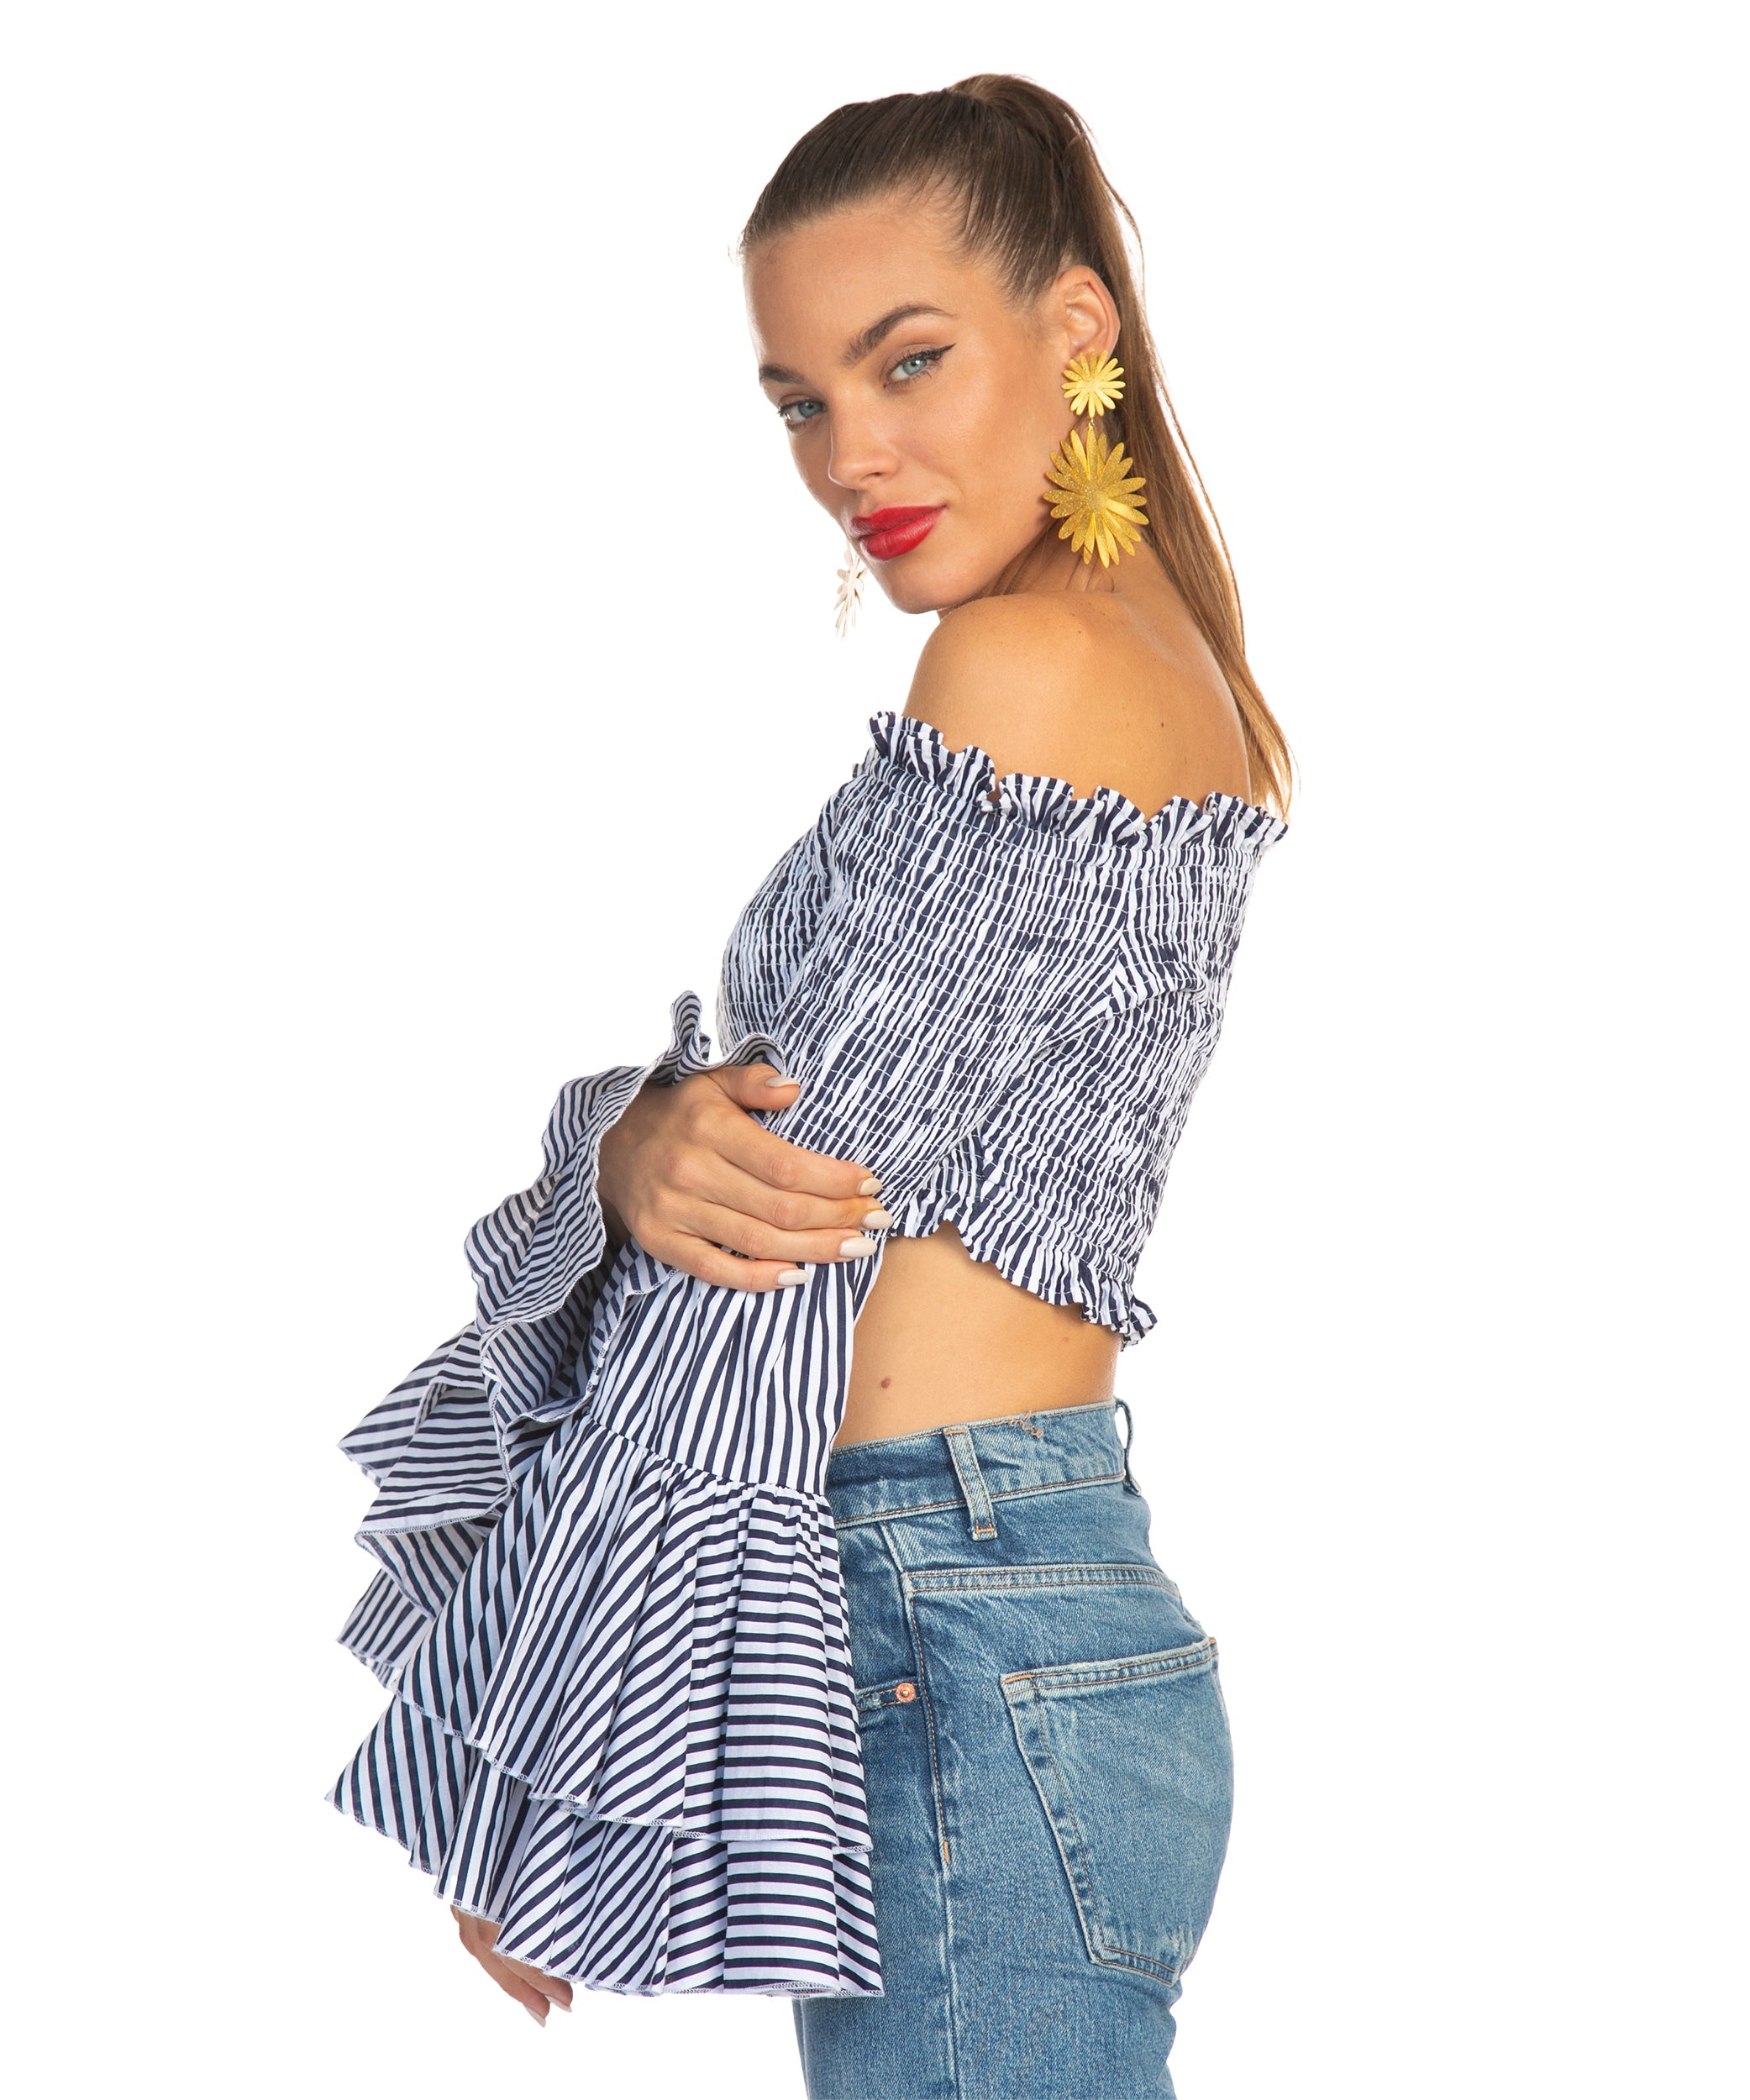 The Blue and White Stripe Salsa Top by Bonita Collective